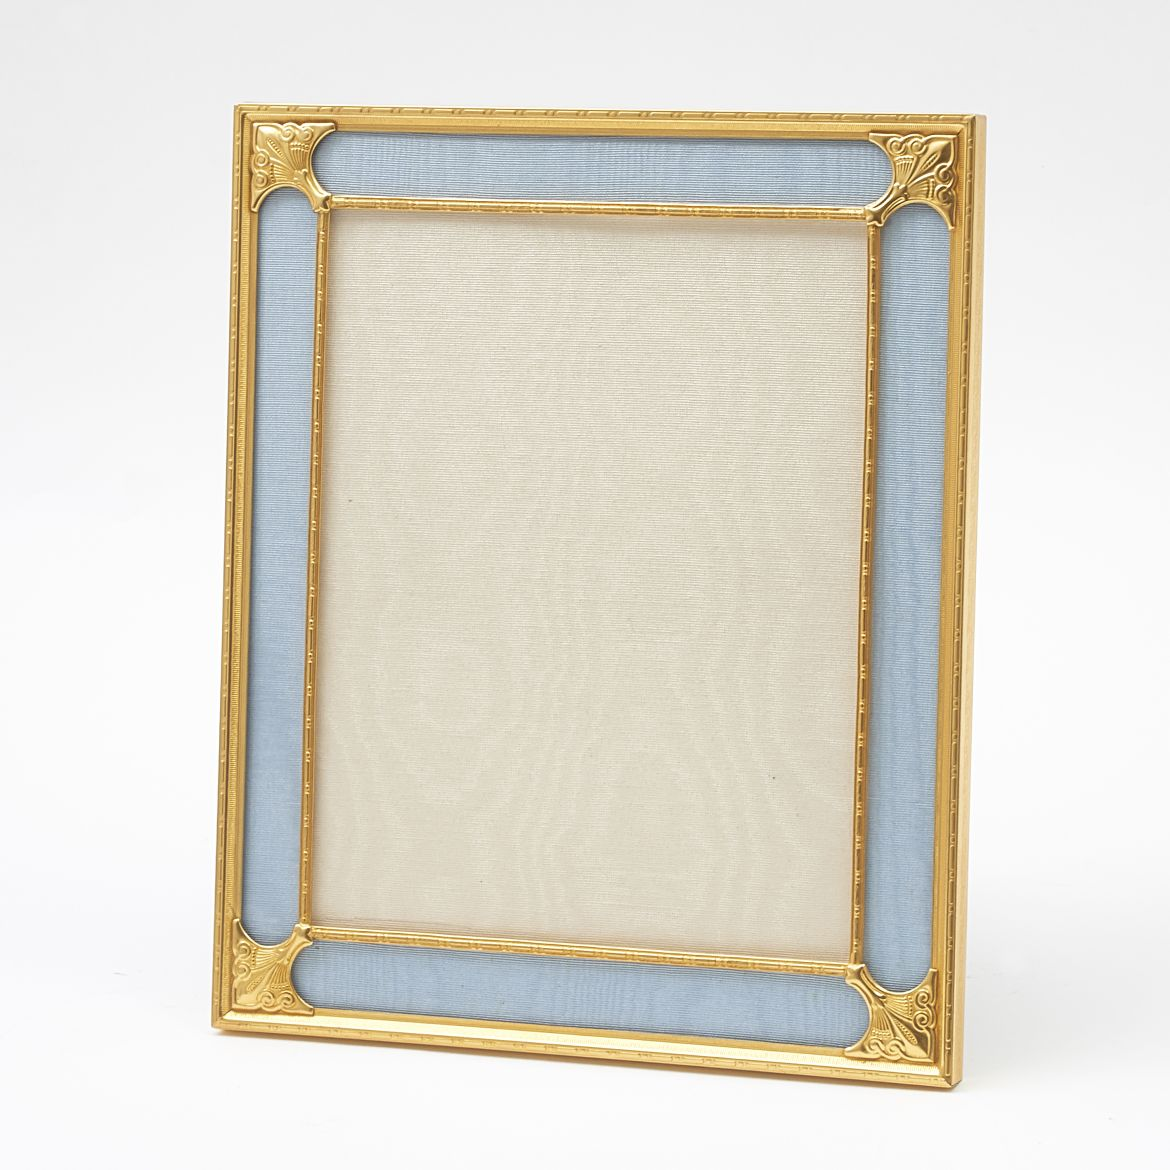 French Art Nouveau Frame